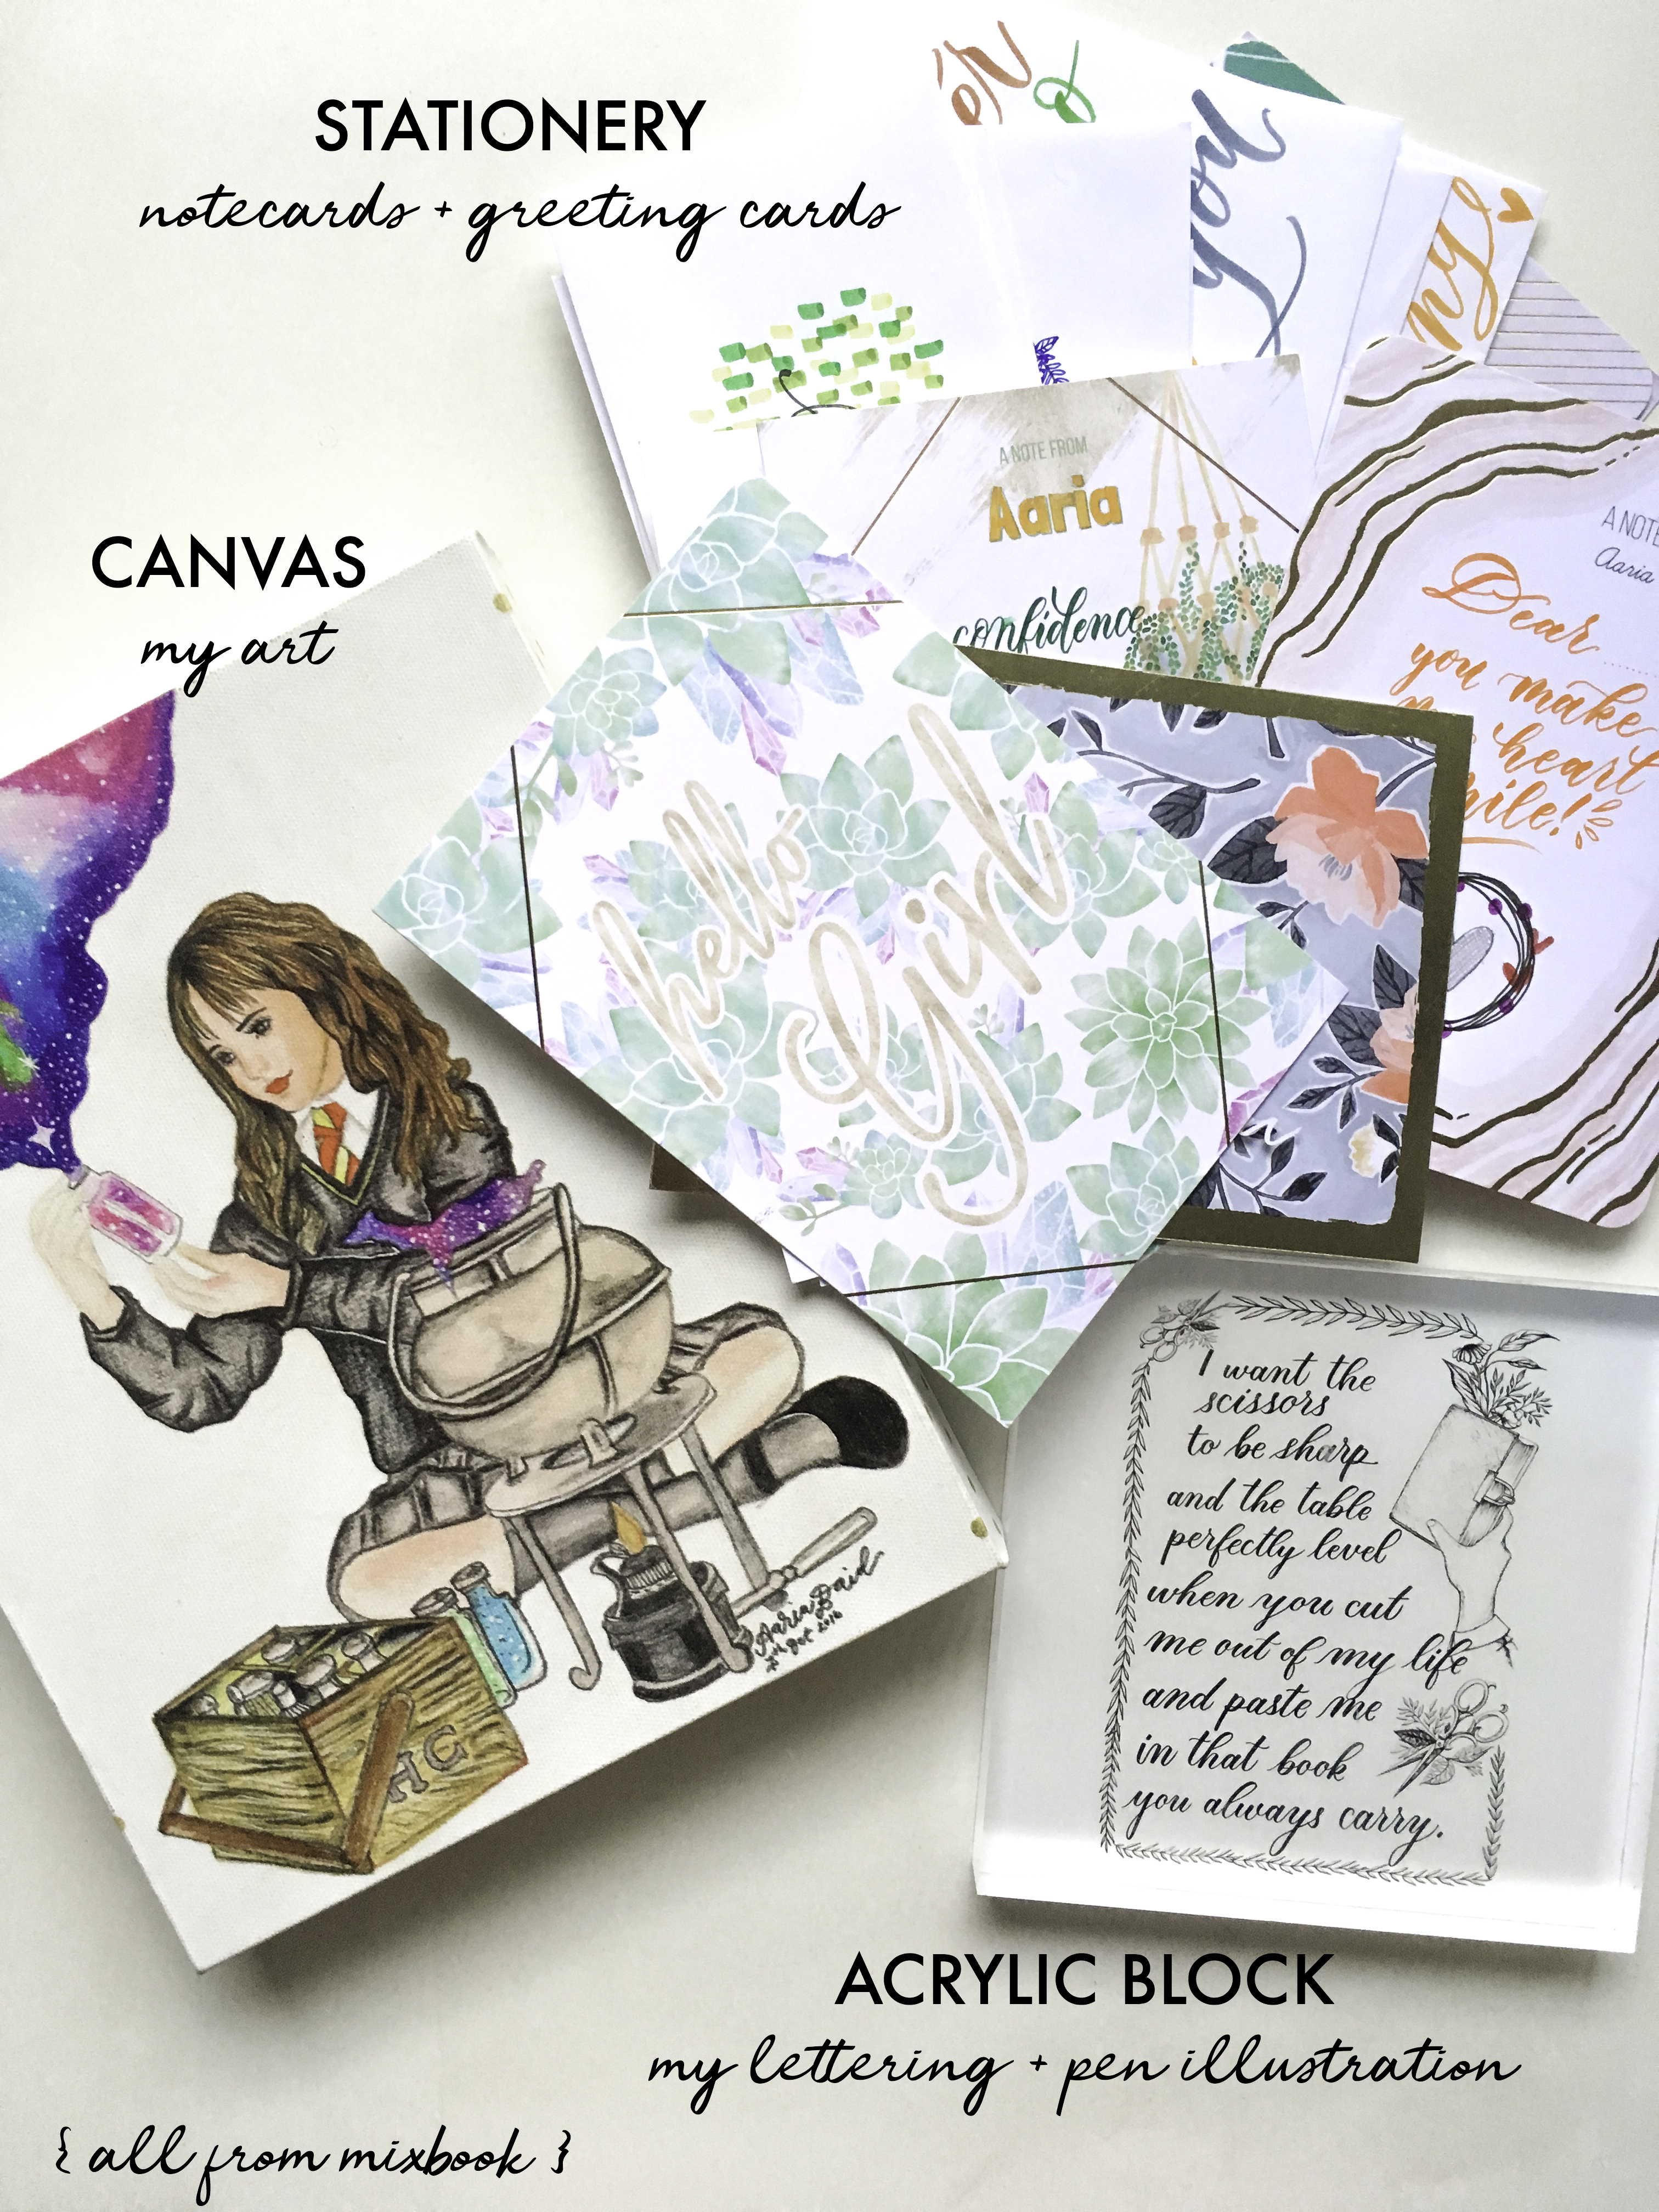 An artist's perspective: Mixbook Review (+ 9 Free Wallpapers!) surelysimple.com